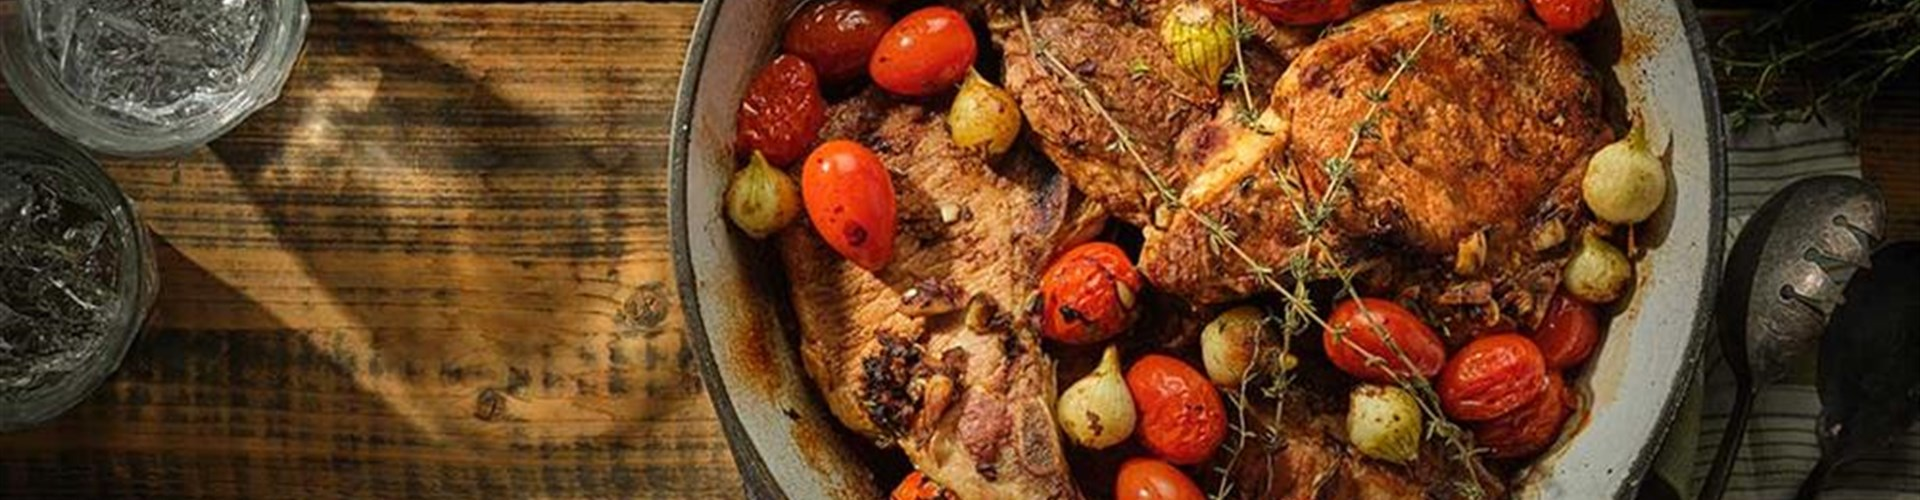 Balsamic Pork Chops and Tomatoes